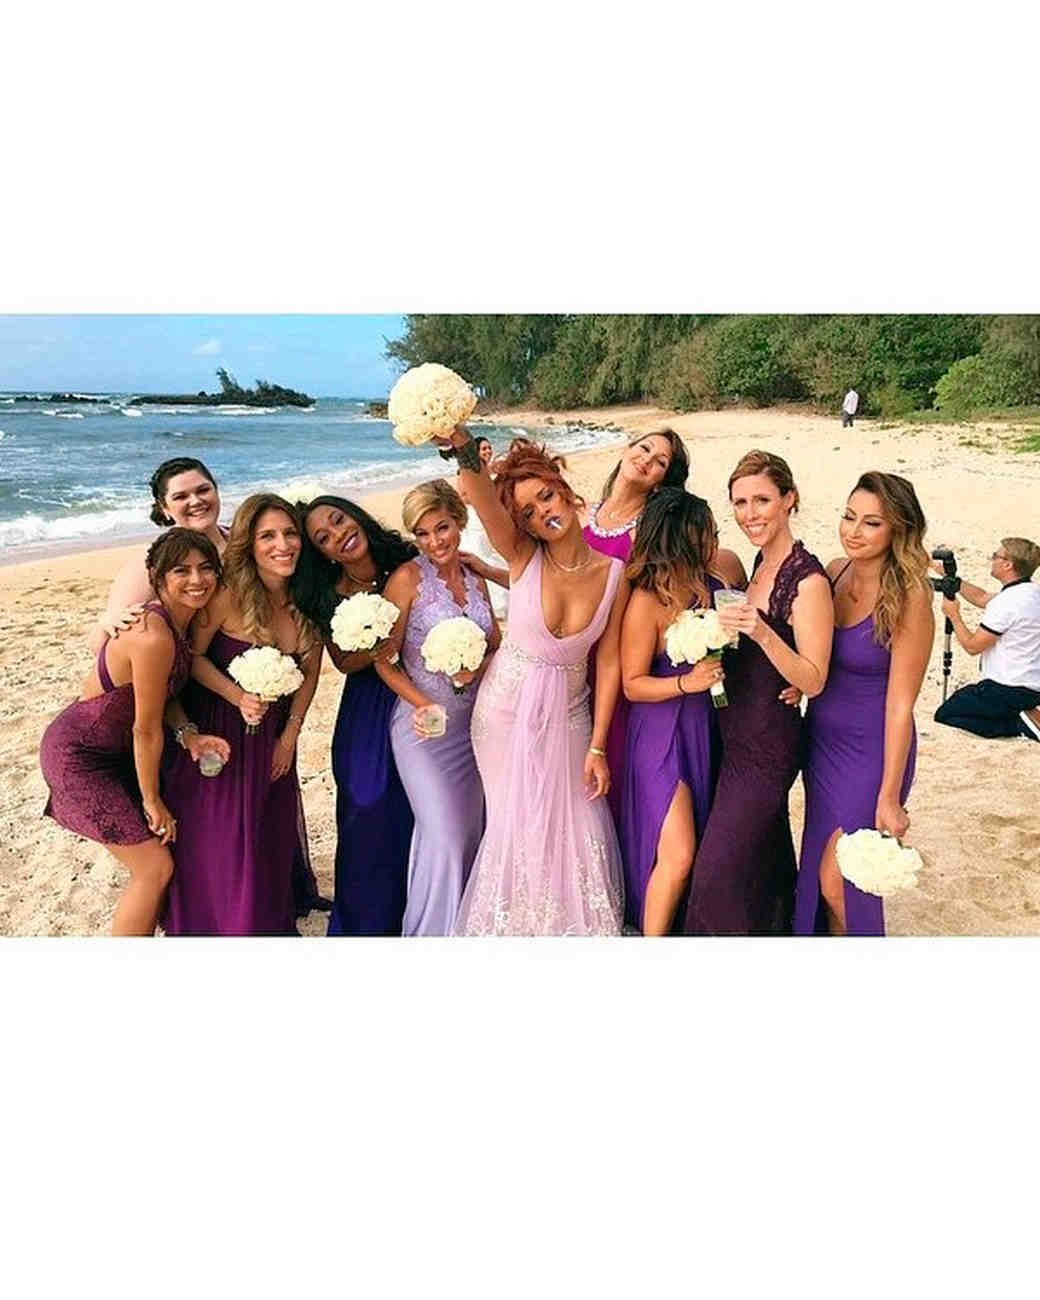 celebrity-wedding-moments-rihanna-bridesmaid-1215.jpg